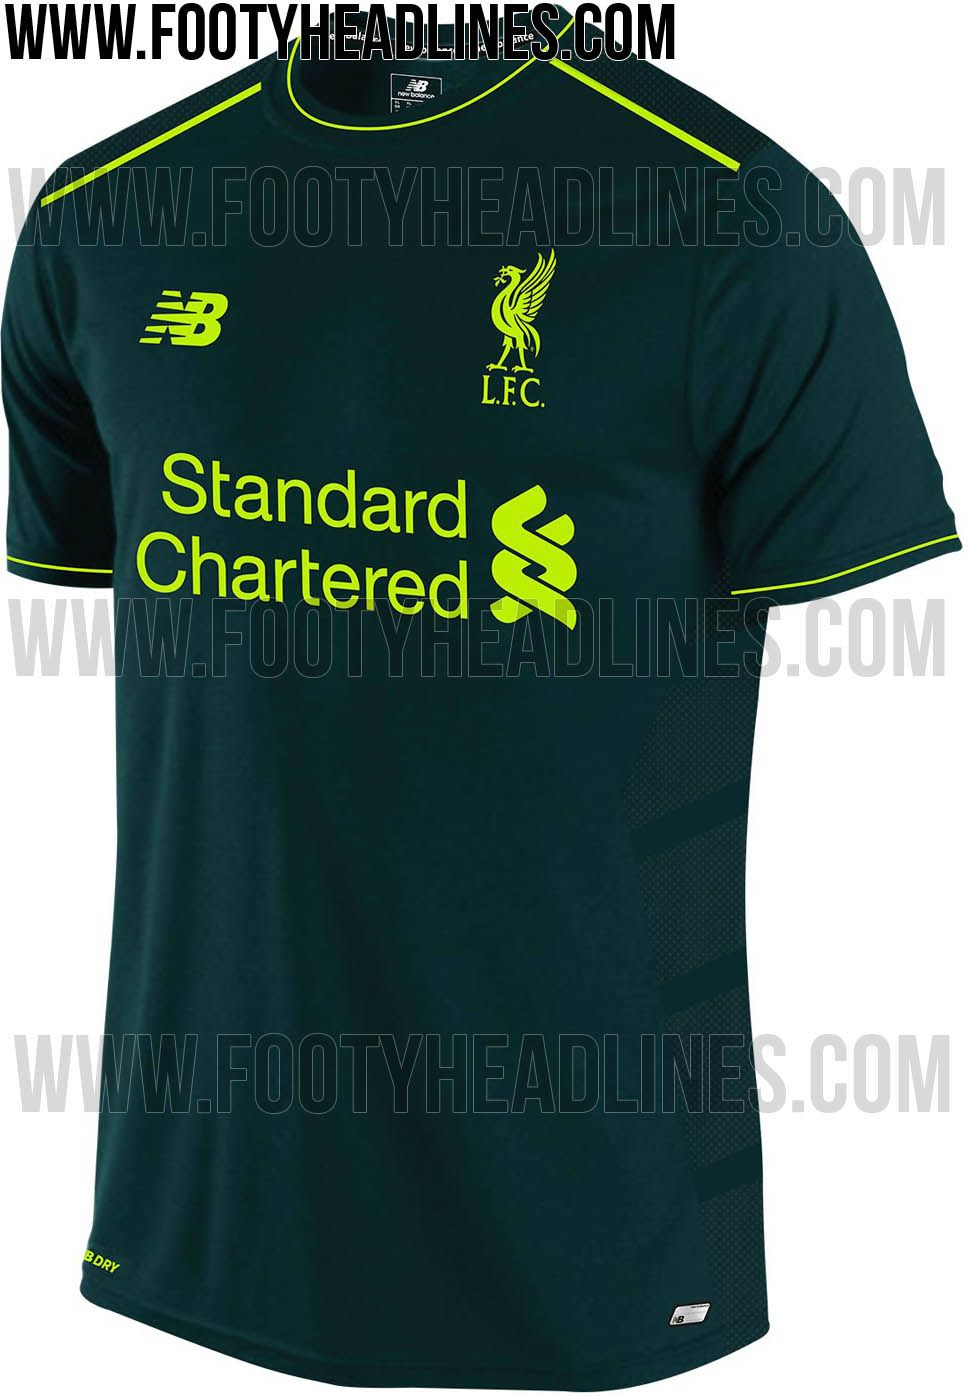 b1f3bd514 Liverpool 16-17 Third Kit Leaked - Footy Headlines